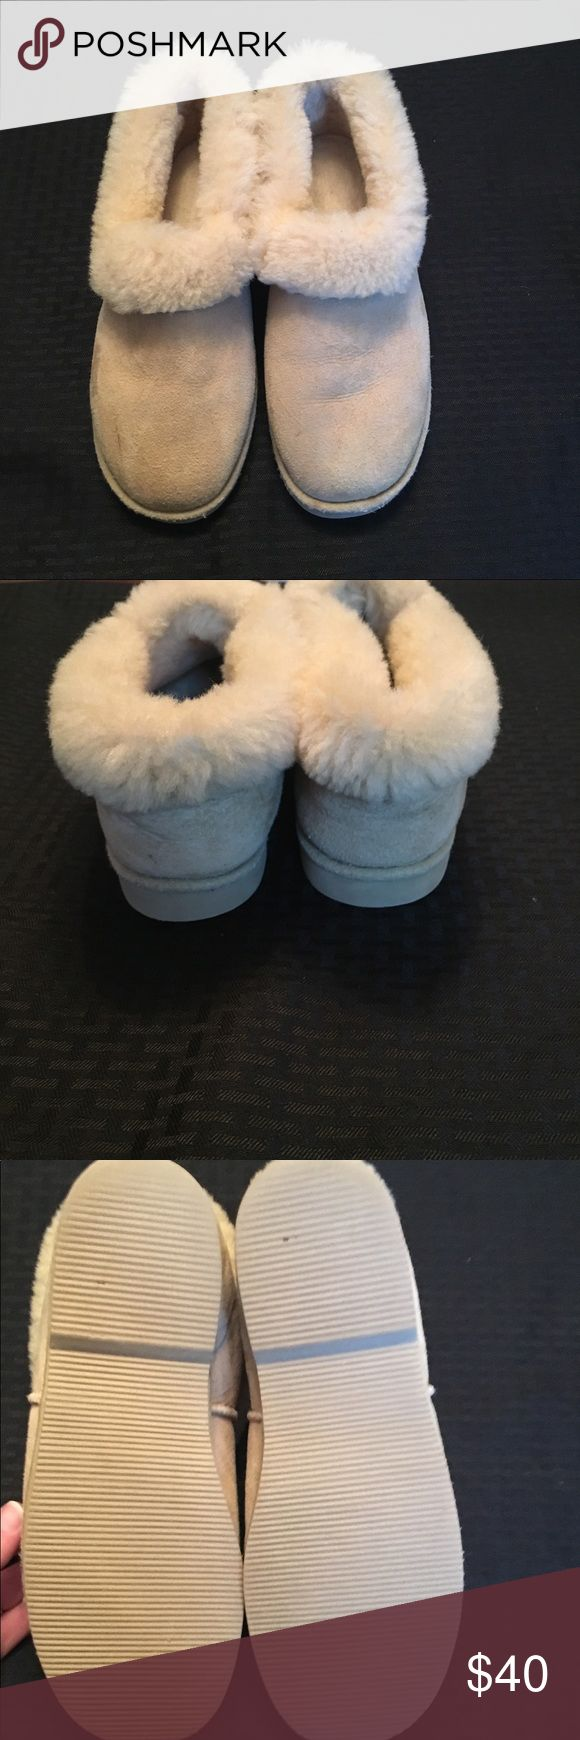 SALE 😴 Eddie Bauer Sheepskin Slippers😴 Super soft outside and extremely warm inside. These slippers were worn once indoors for short period of time. Great condition, but a mark on front right front toe (see pic) and one on back heel. So much life and warmth to them ☺️Reasonable offers accepted, thanks for looking 💋 Eddie Bauer Shoes Slippers